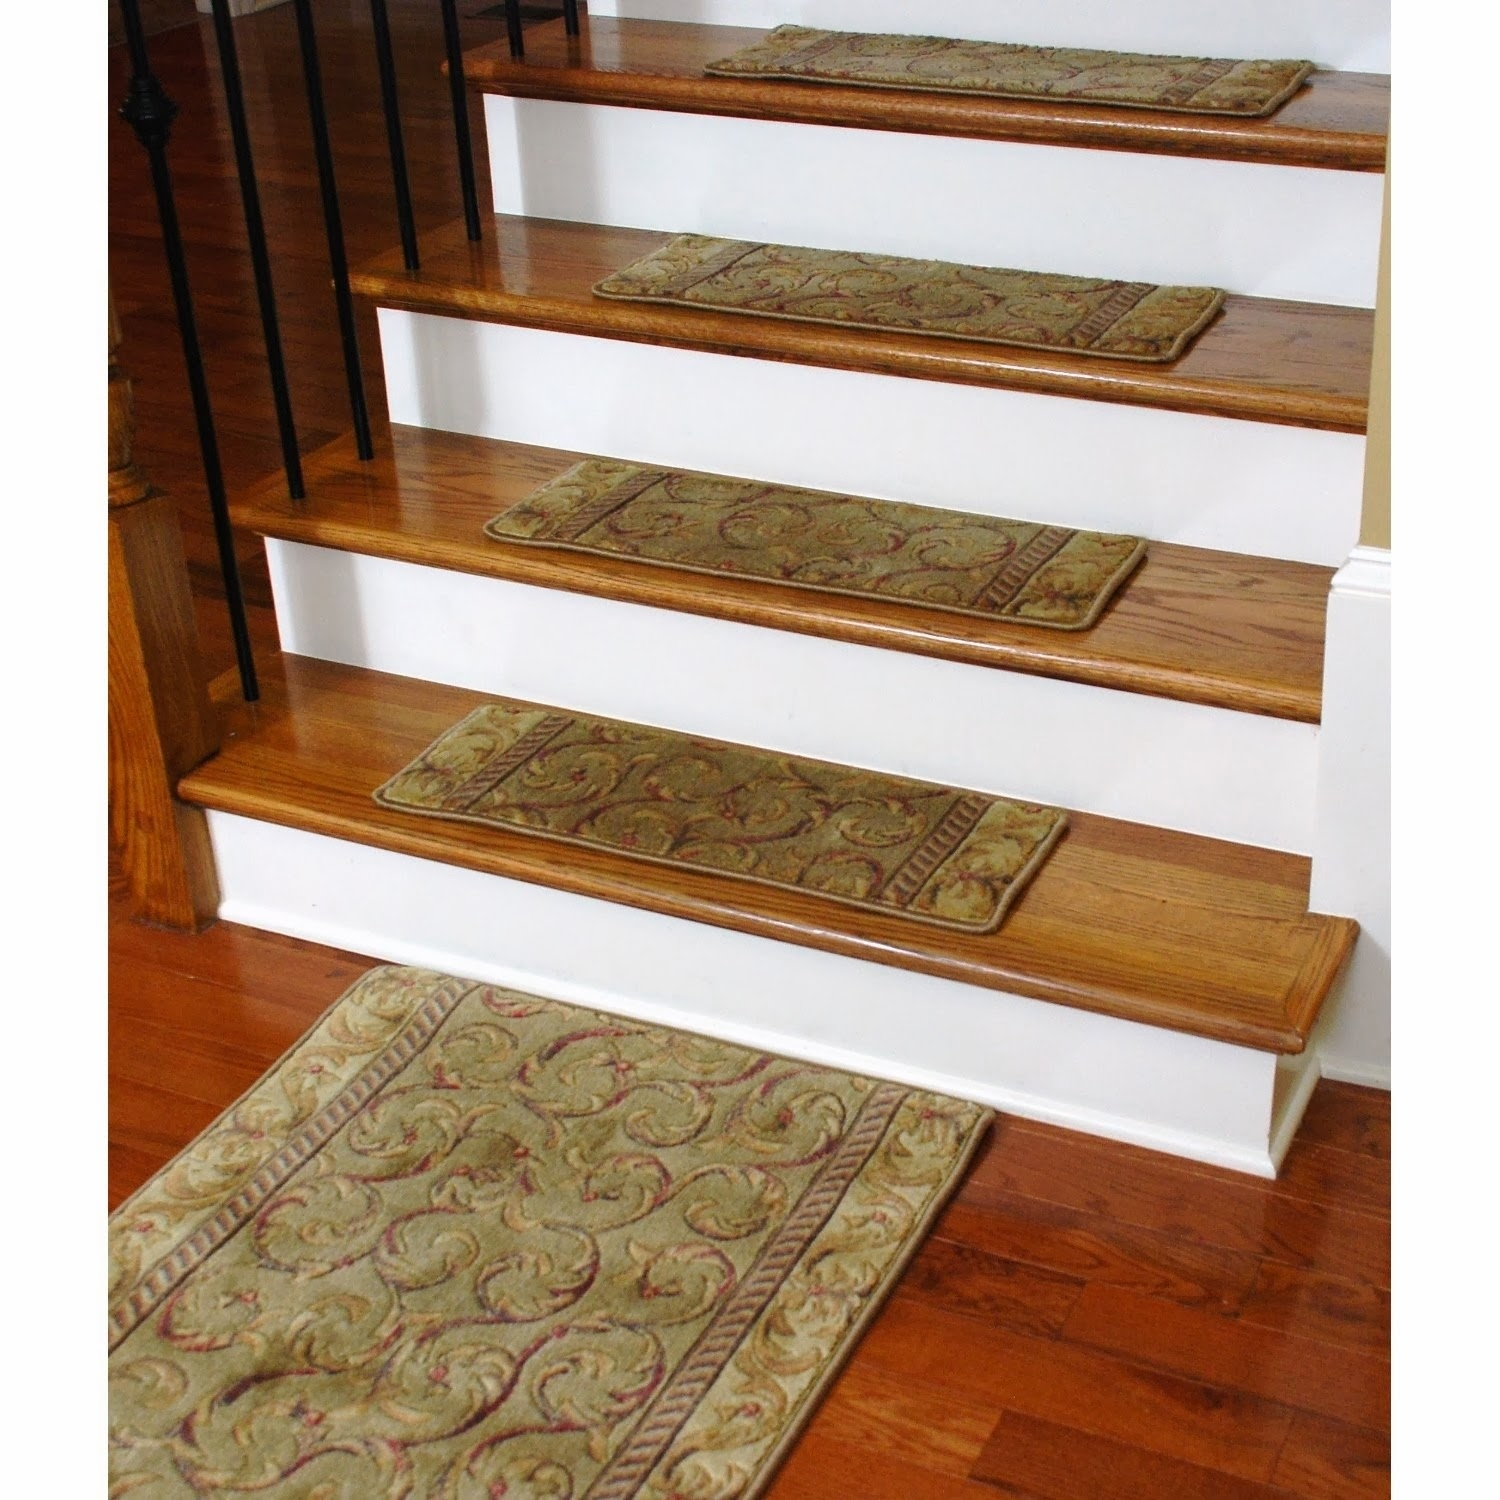 Awesome Modern Stair Tread Rugs 22 Modern Stair Tread Rugs Inside Modern Stair Tread Rugs (Image 1 of 15)